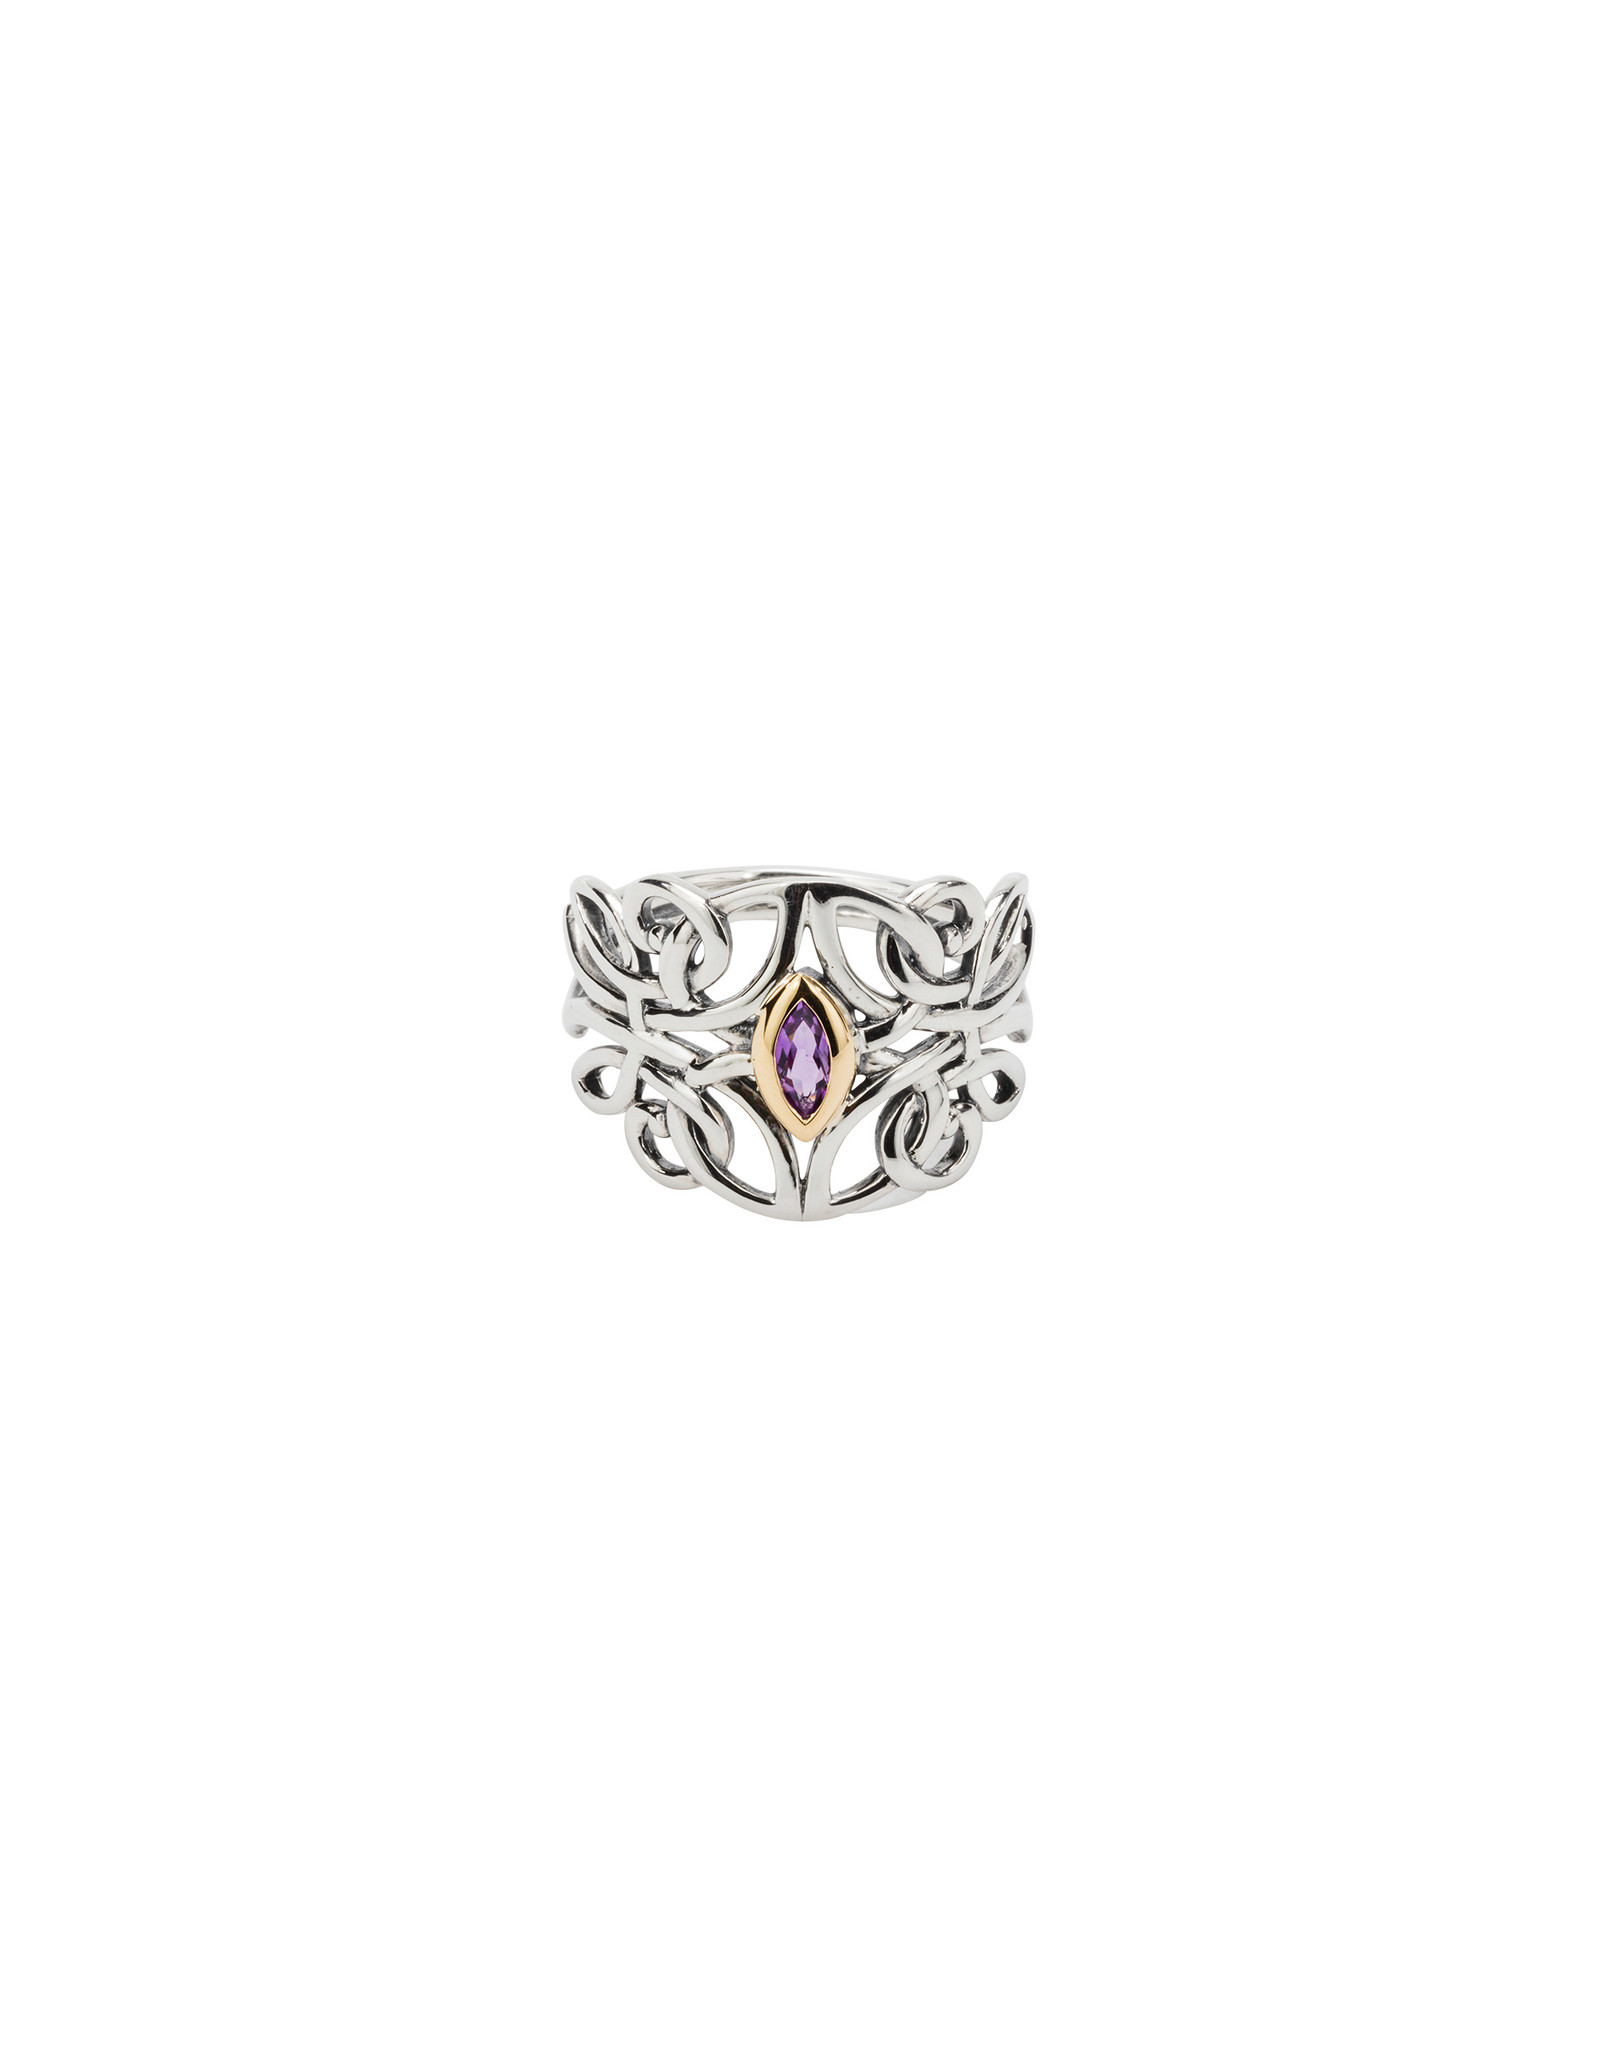 Keith Jack Amethyst Ring SS/10KY